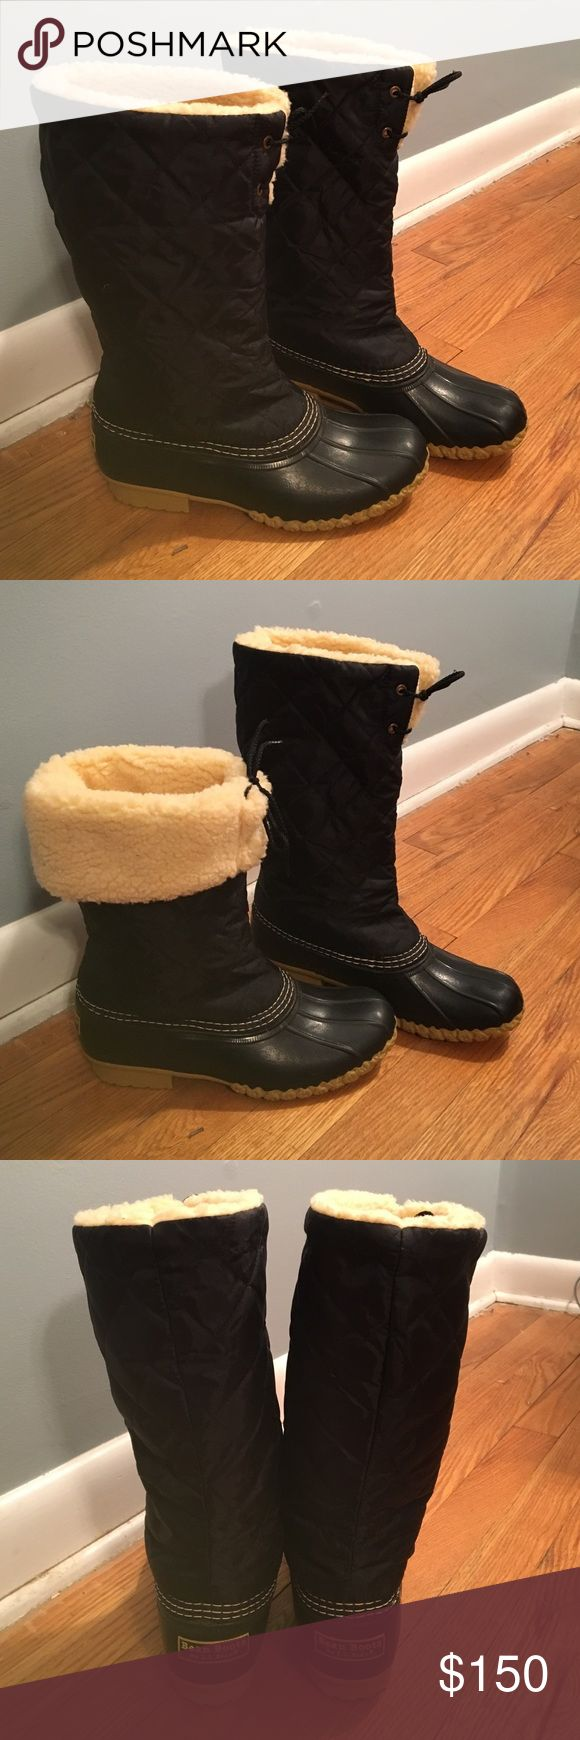 Women's Black Quilted L.L. Bean Boots Women's Black Quilted L.L. Bean Boots. Size 8M. Feels true to size. Can be worn 2 ways shown in pictures. Have never been worn. Like new condition. NO TRADES! L.L. Bean Shoes Winter & Rain Boots